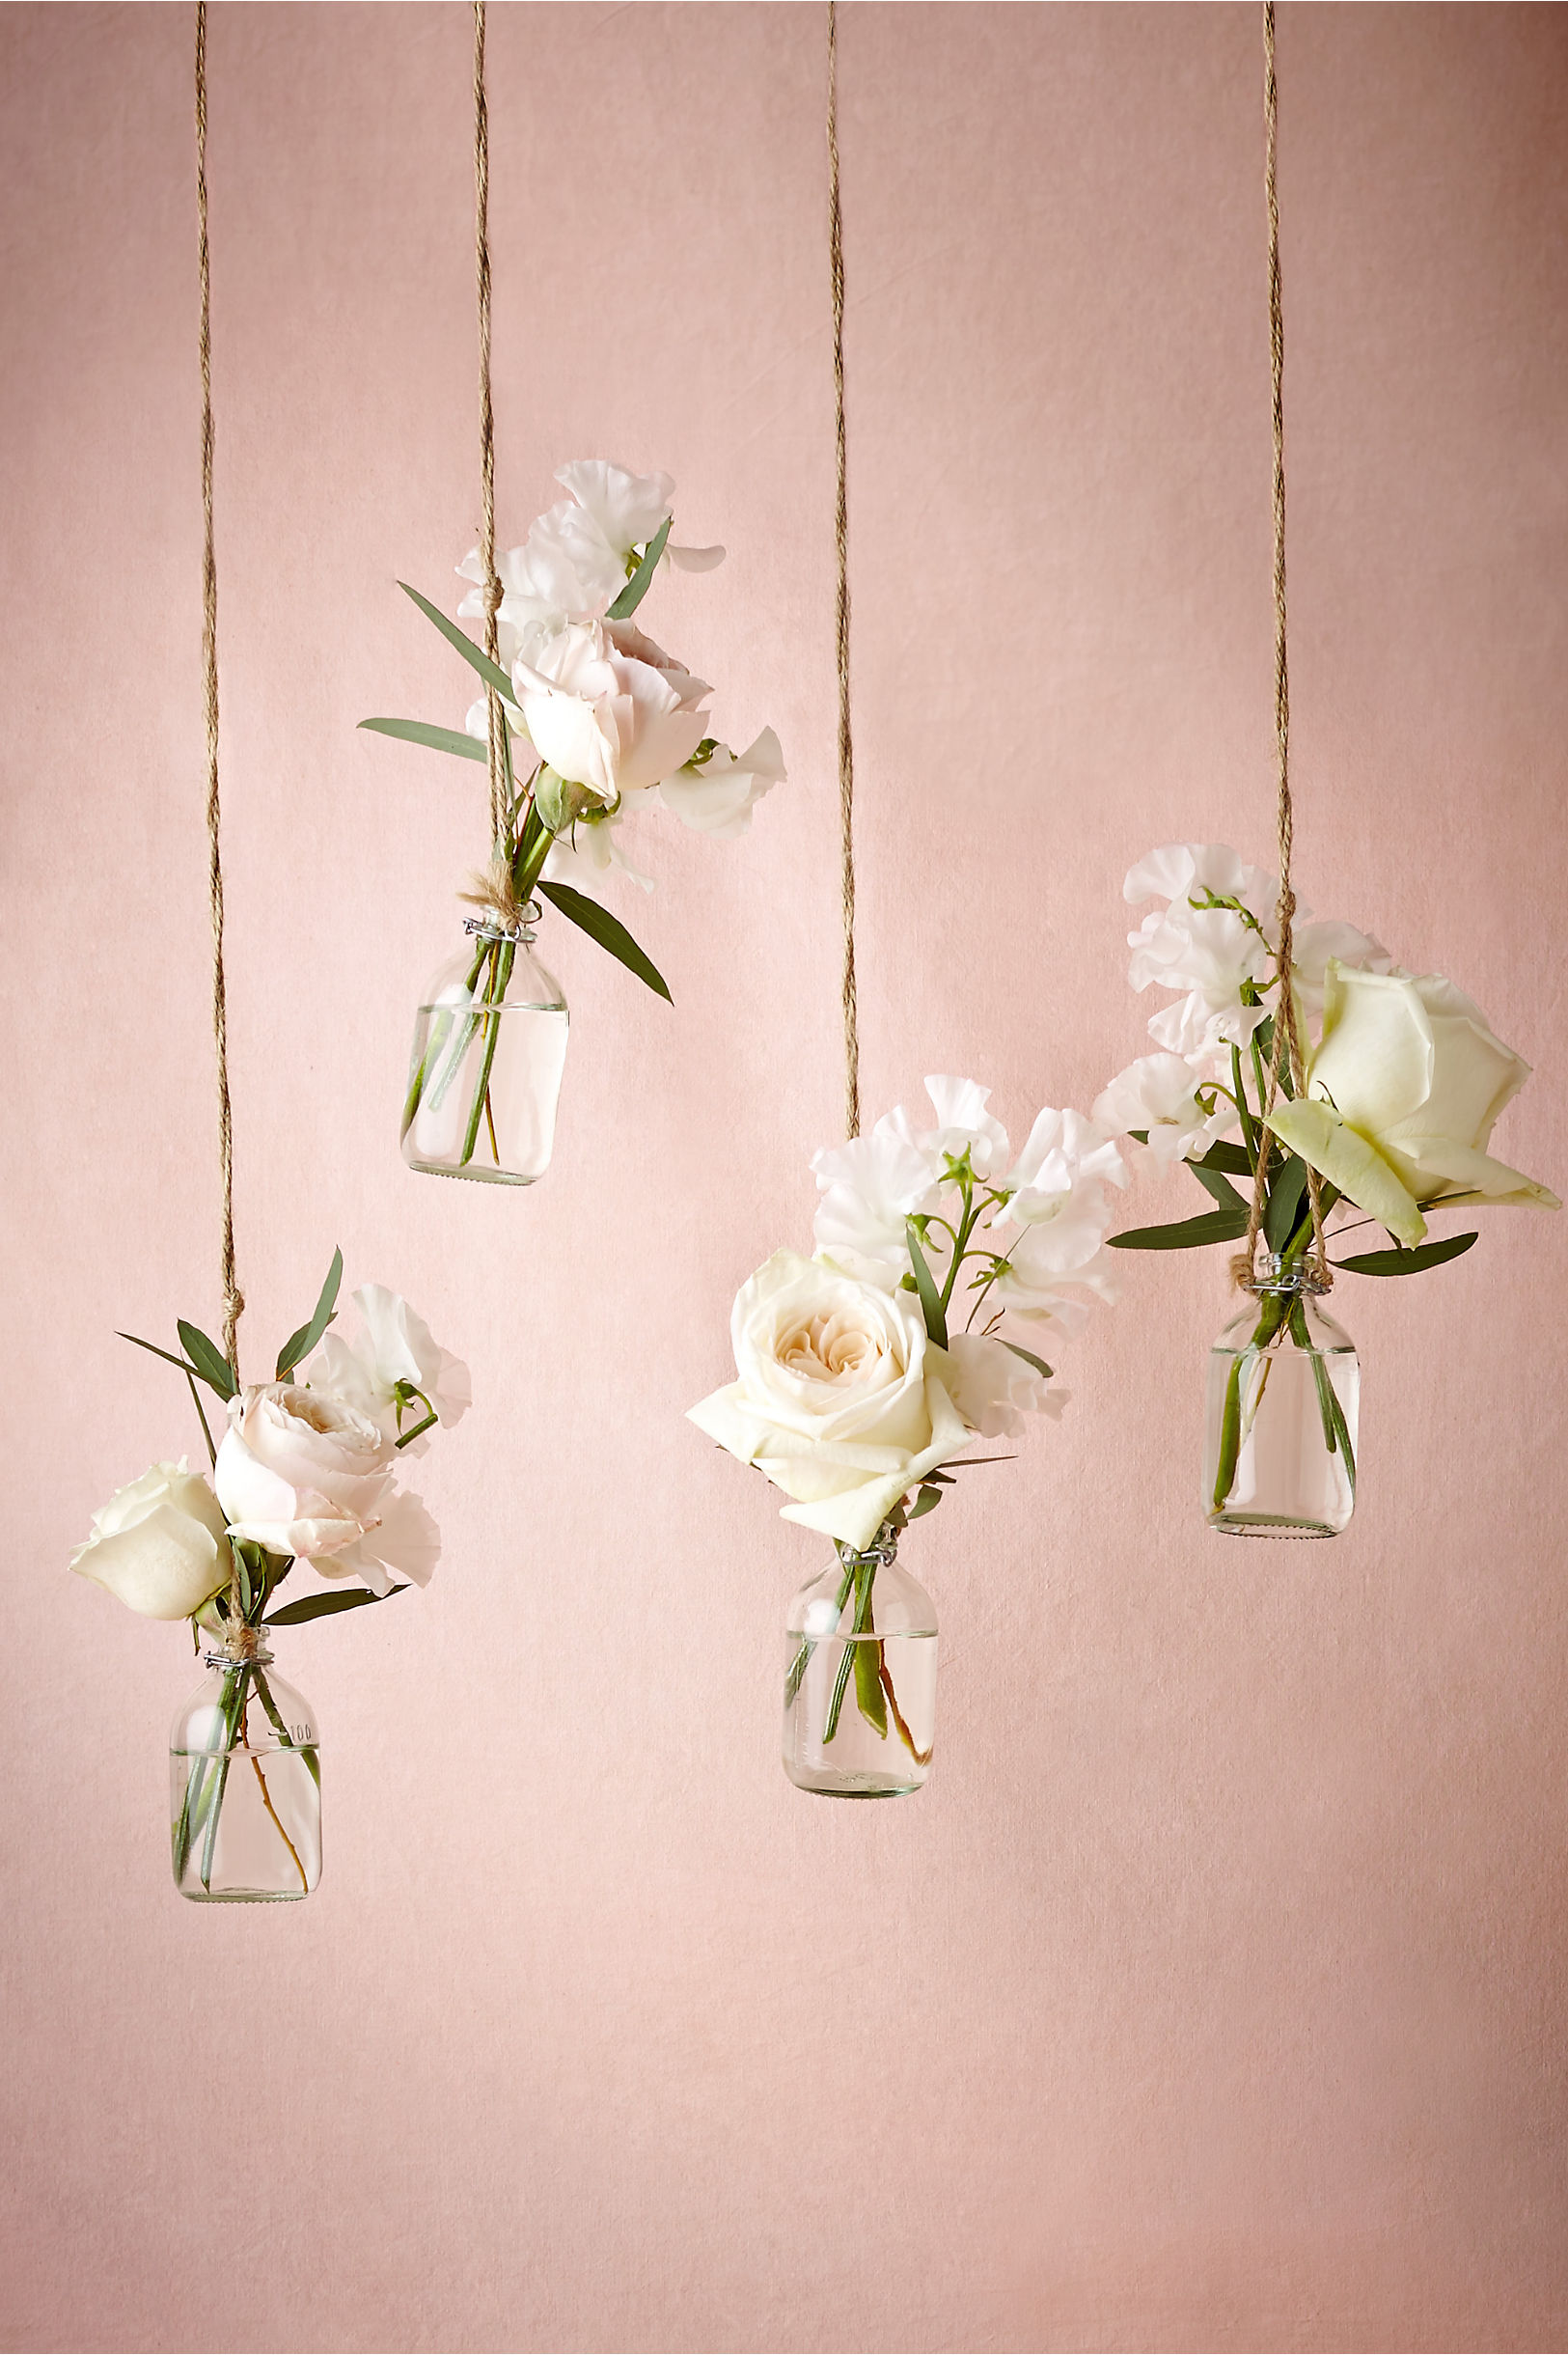 Hanging bud vases 2 in dcor gifts bhldn clear hanging bud vases 2 bhldn reviewsmspy